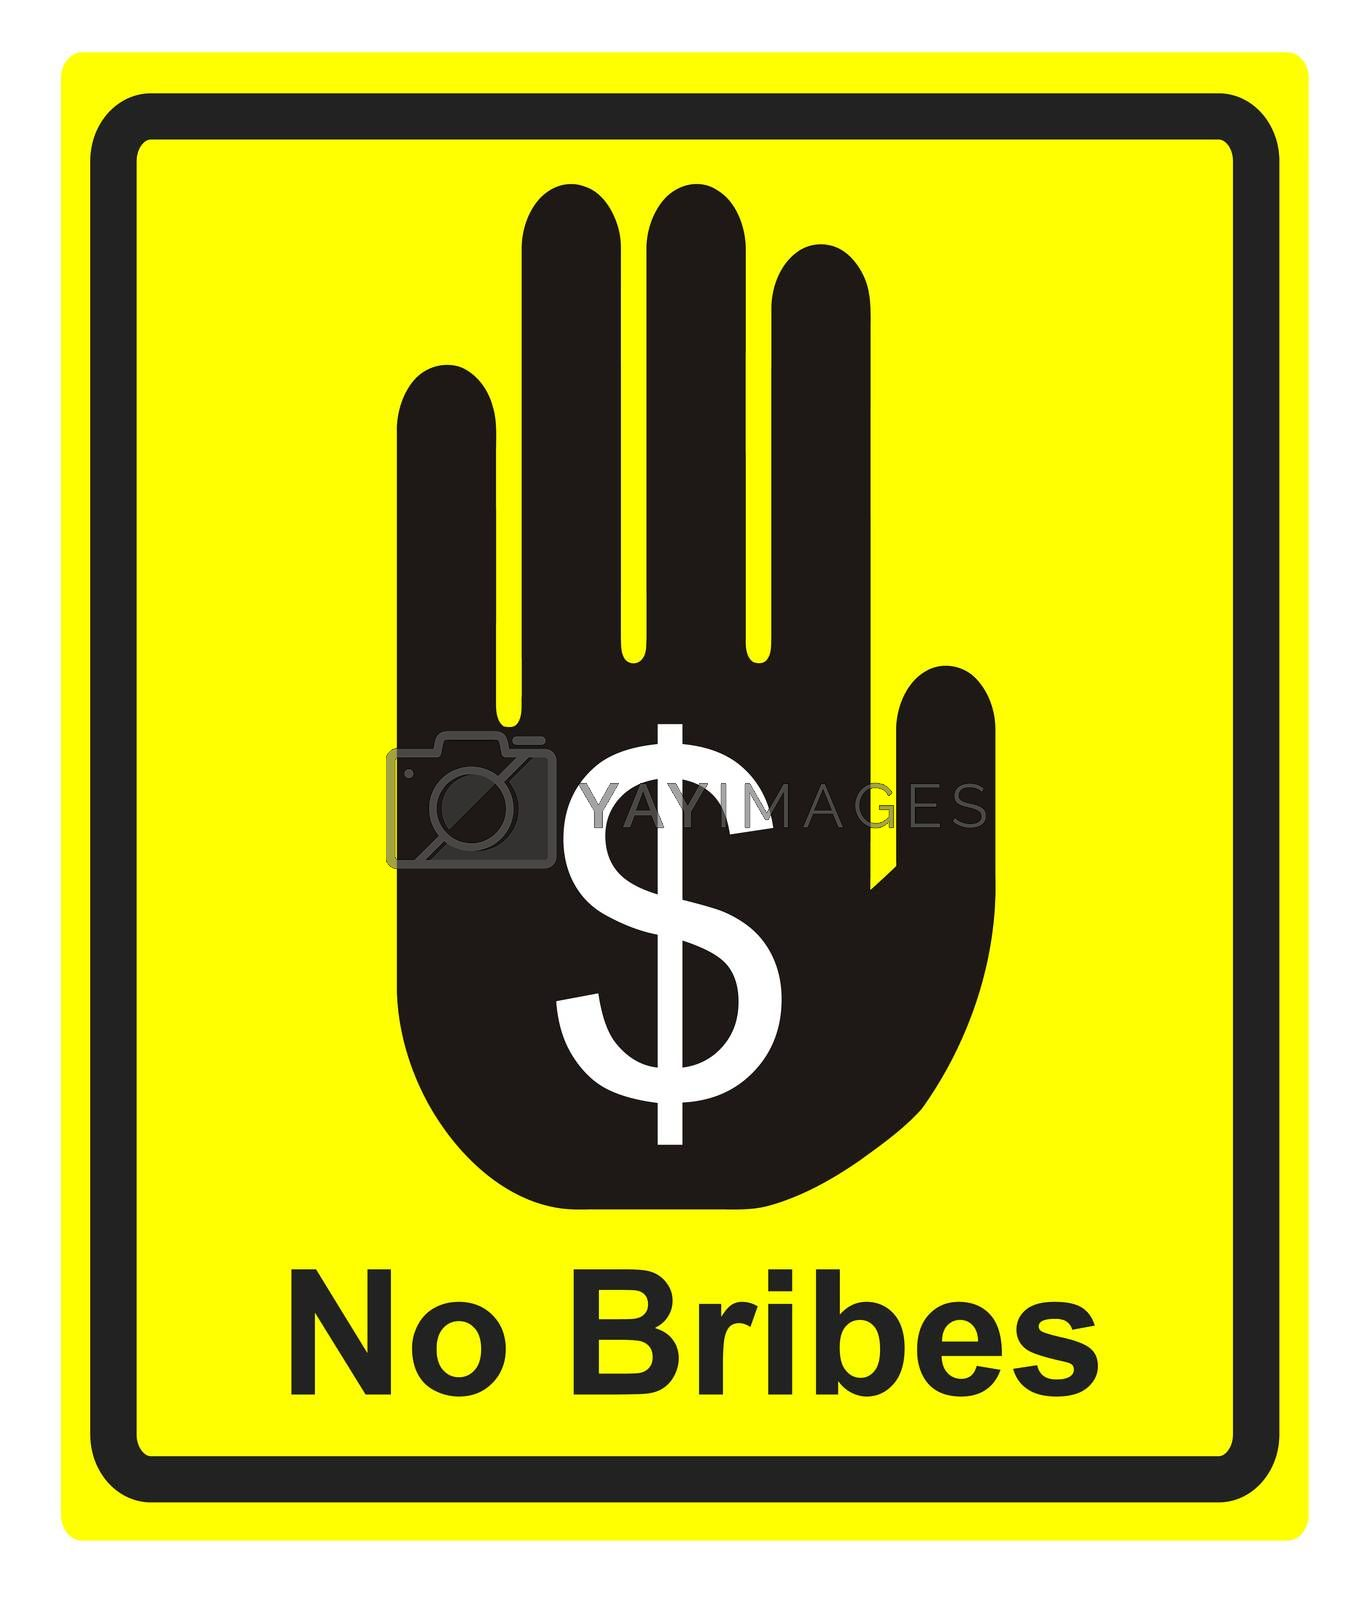 Concept sign to fight against bribes and corruption